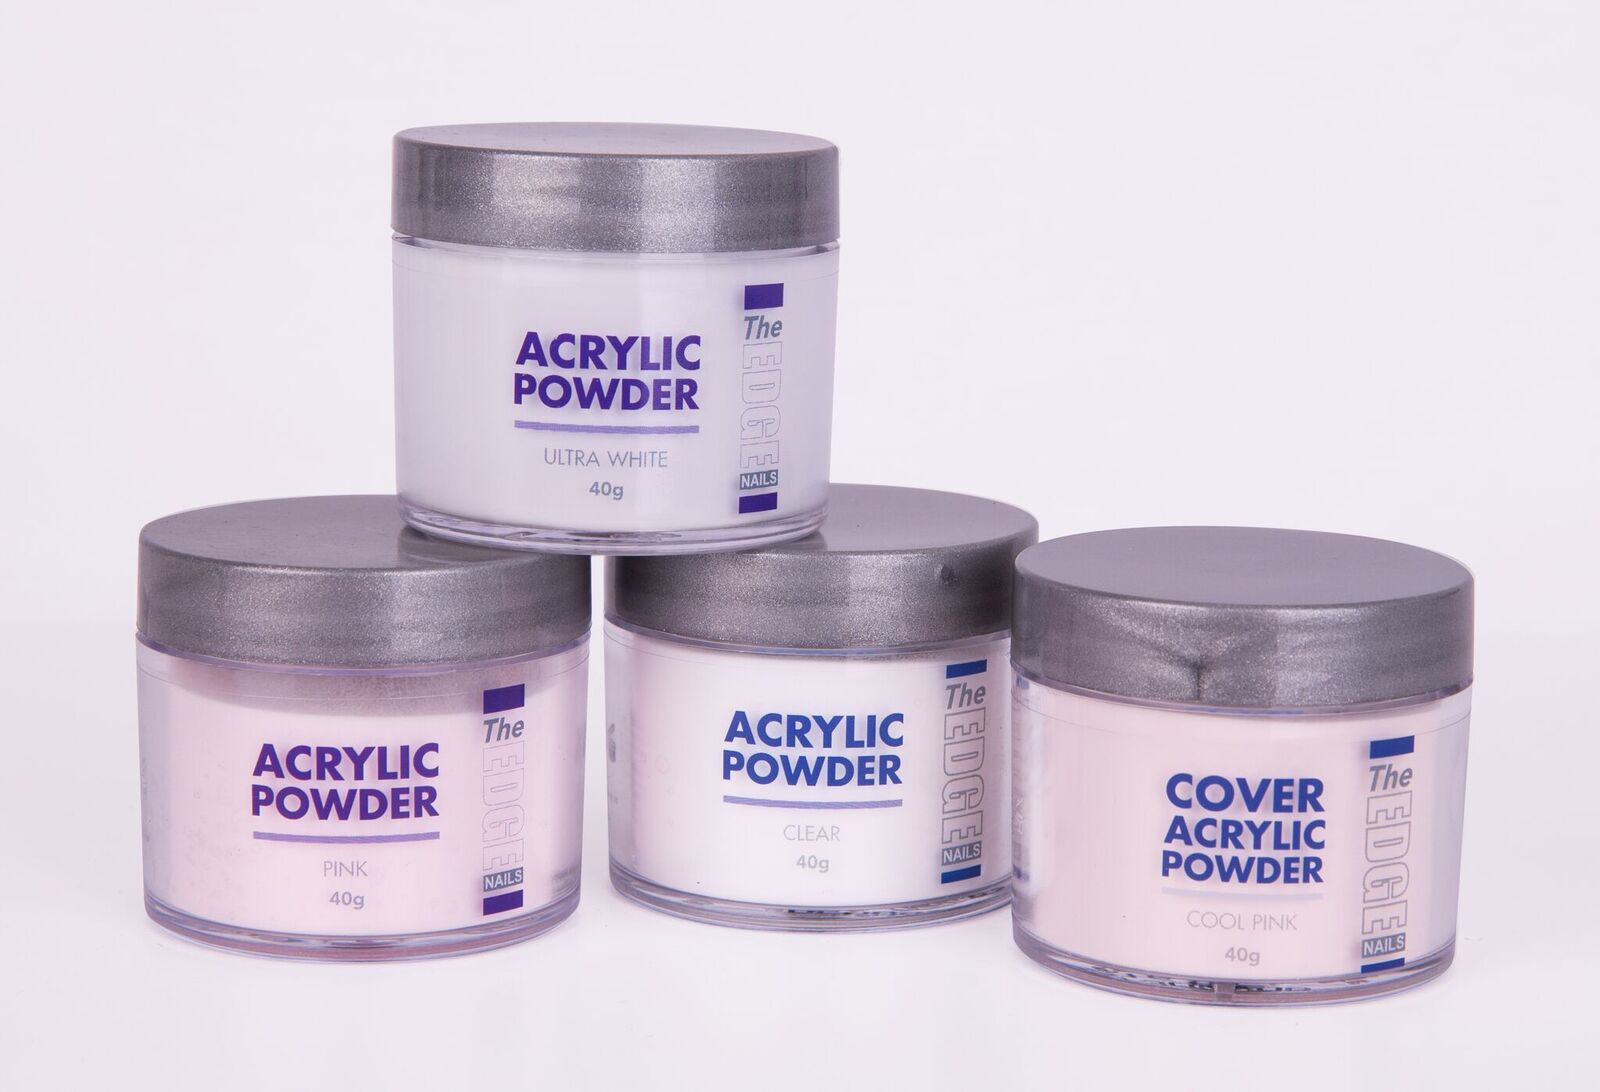 The Edge Acrylic Powder Pink 40g - New improved